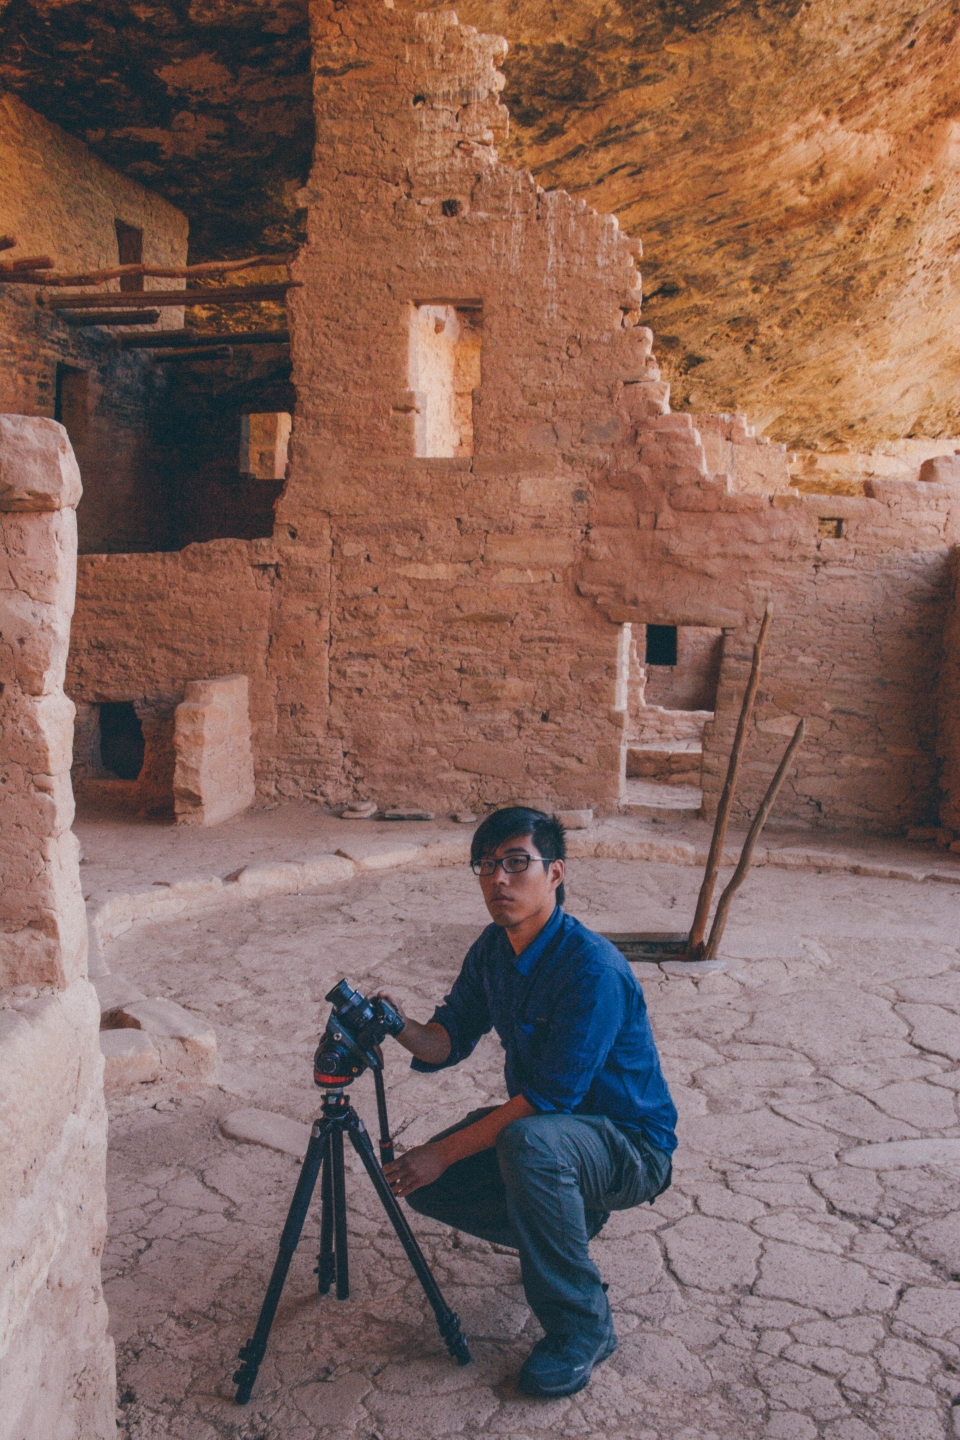 Andrew squatting with tripod in ruins of Mesa Verde National Park